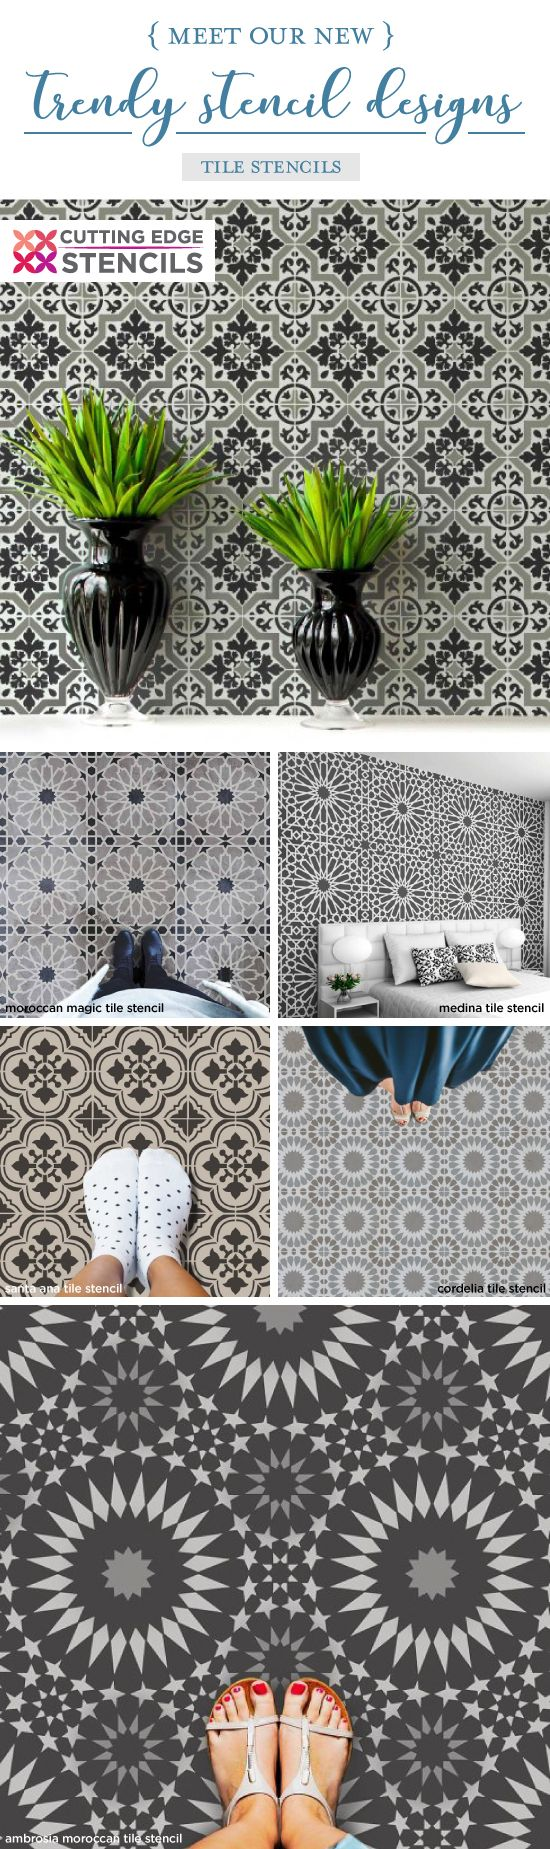 Cutting Edge Stencils shares a New wall stencil collection that includes gorgeous cement tile patterns perfect for making over old floors or linoleum flooring. http://www.cuttingedgestencils.com/wall-stencils-stencil-designs.html